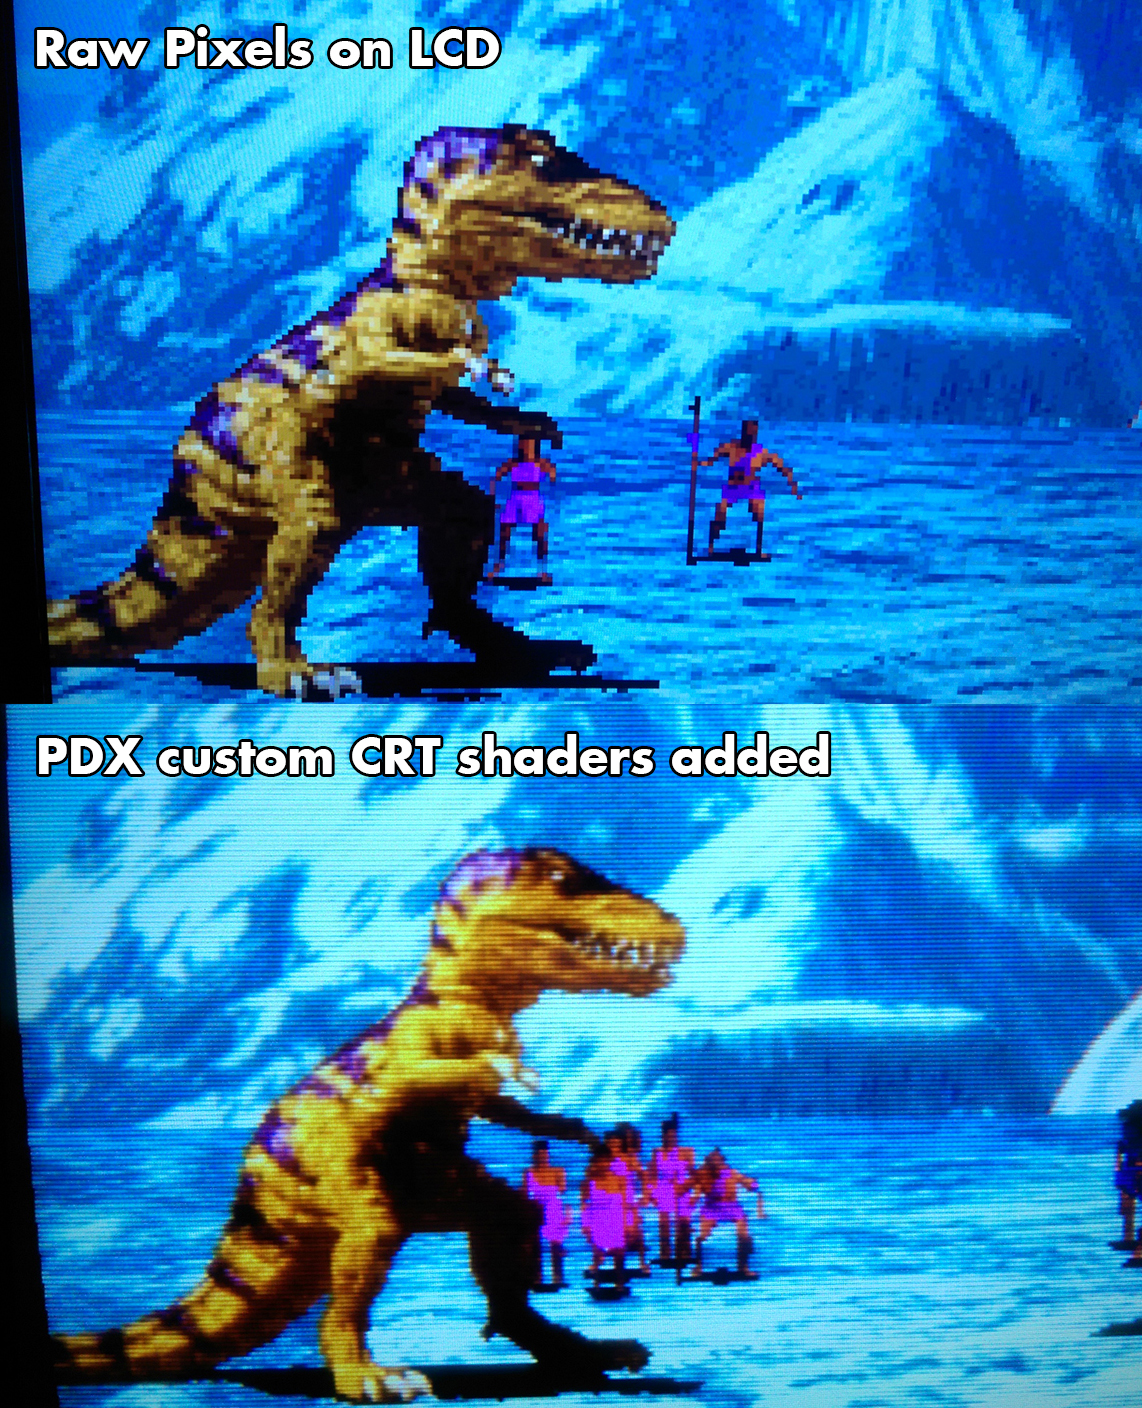 Improved retrogames on LCD screens through custom shaders